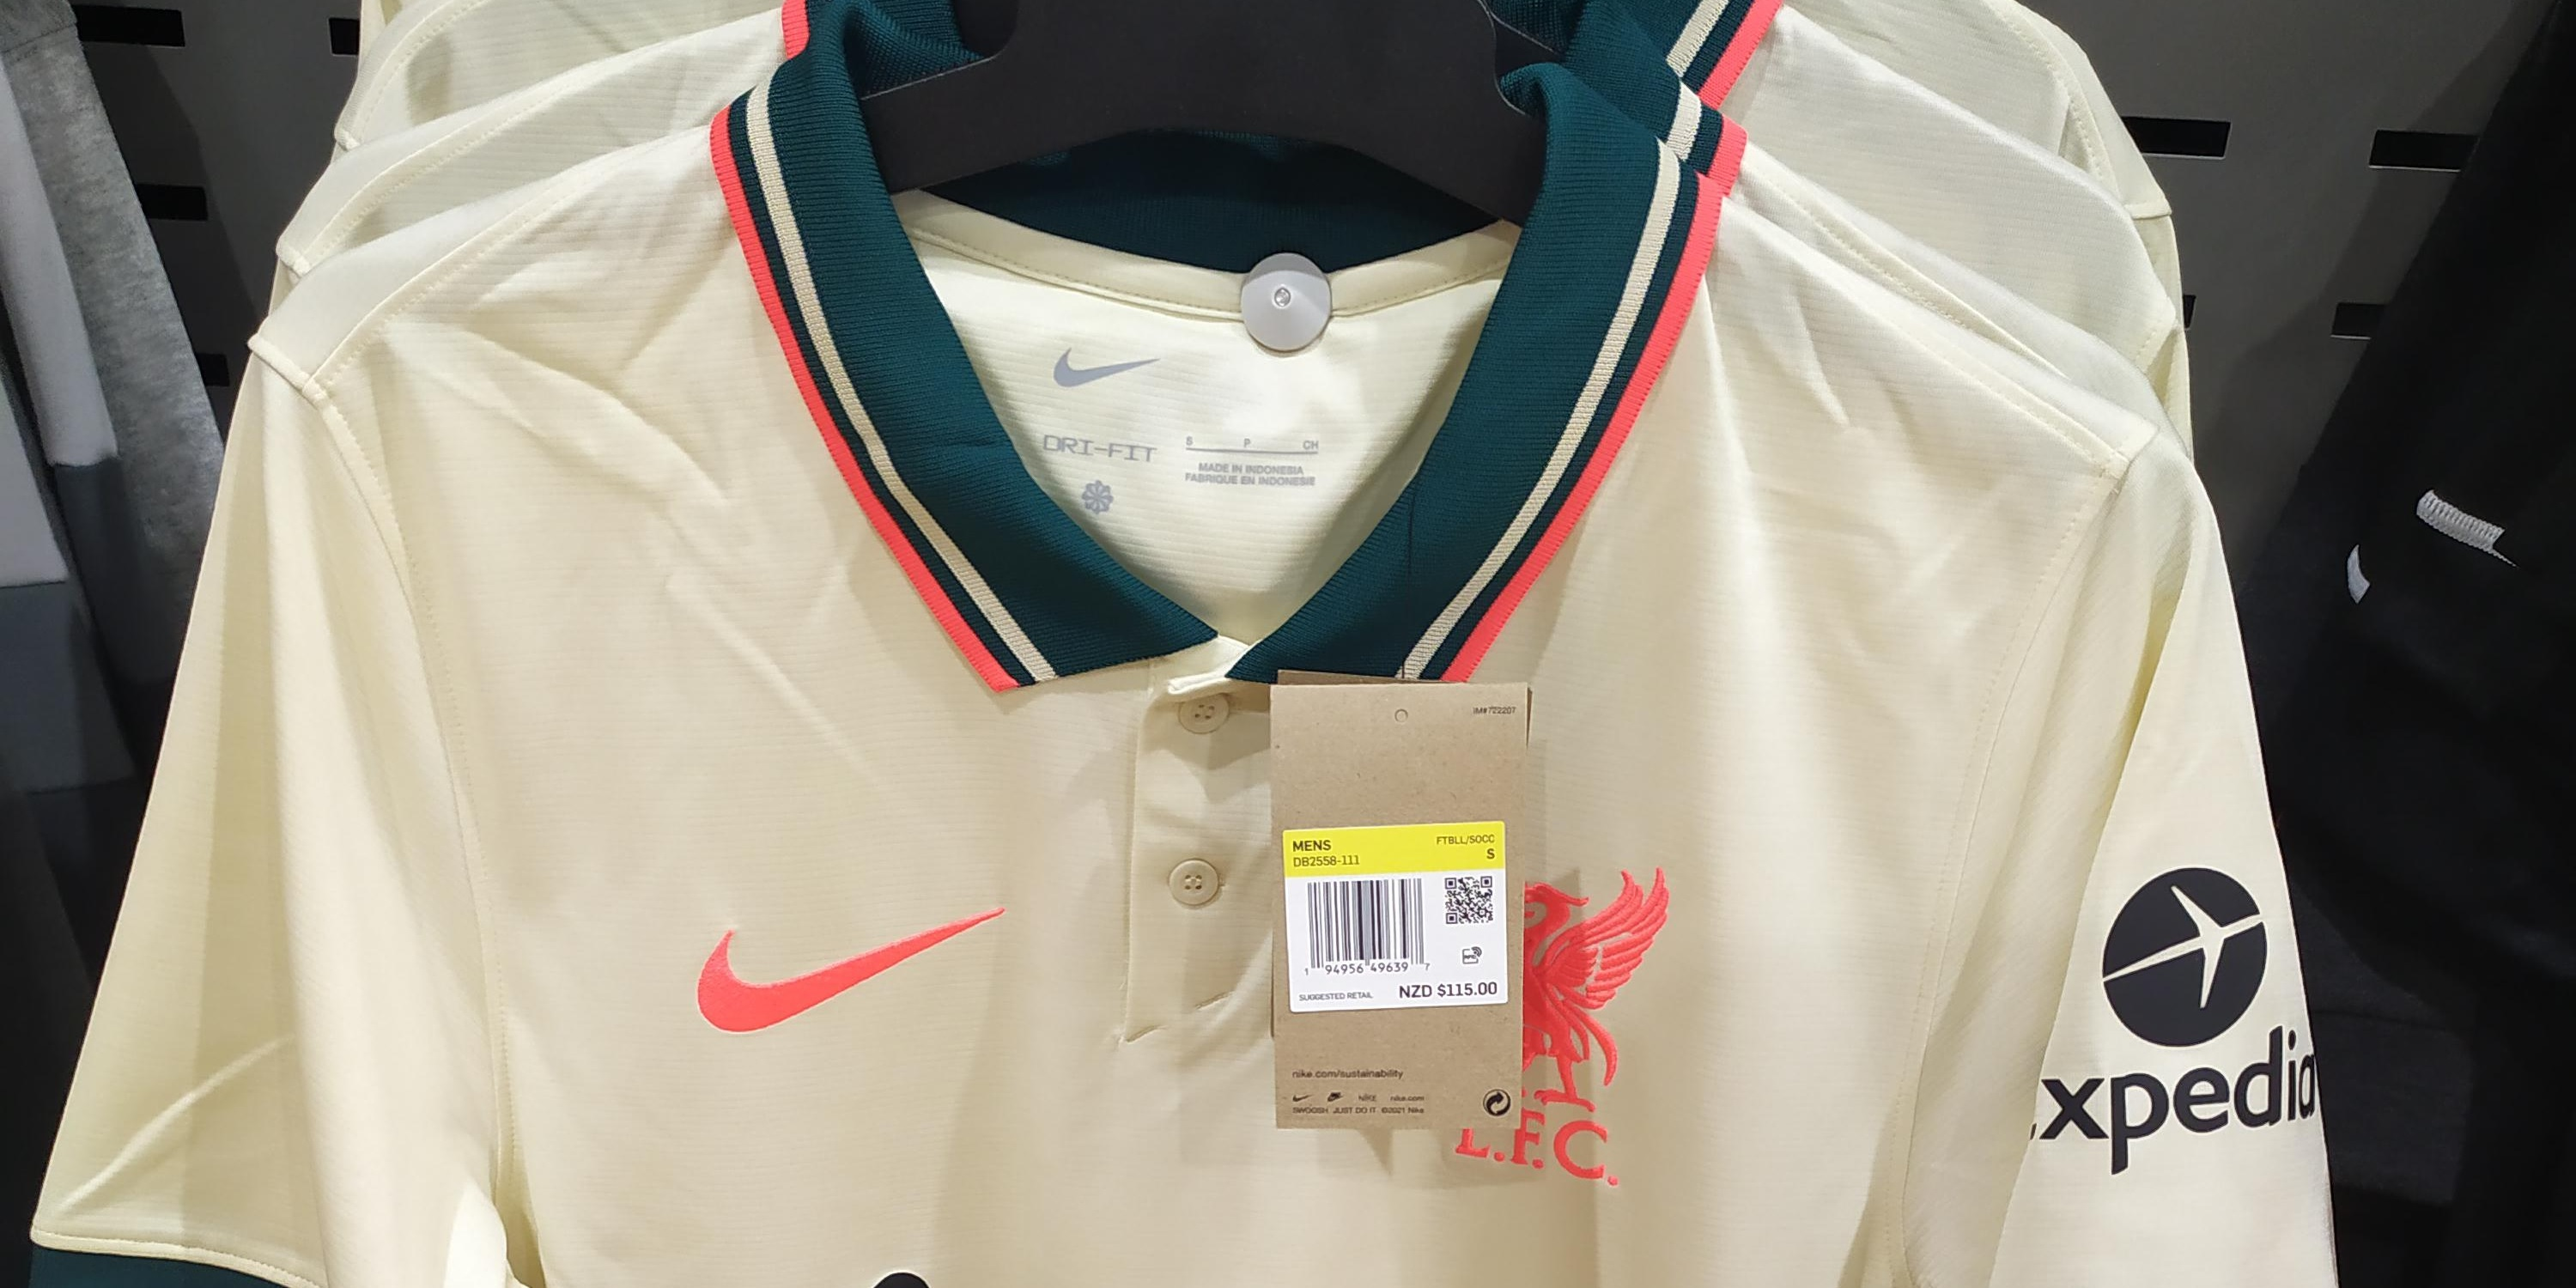 (Photo) Liverpool's new away kit for 21/22 spotted on sale in store